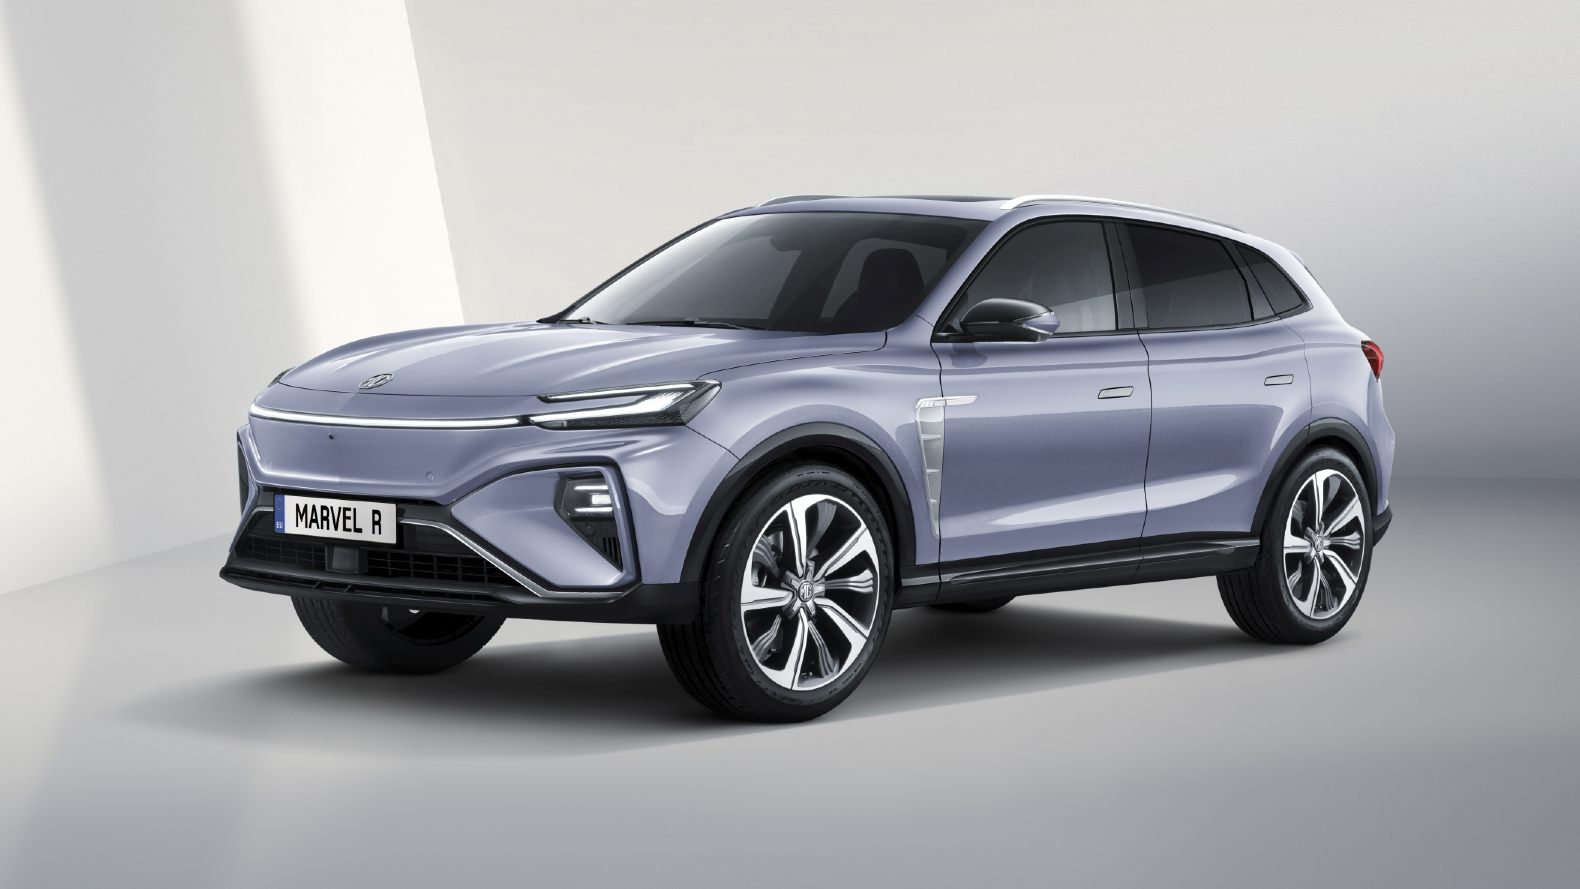 MG Marvel R electric SUV revealed as the successor to the Marvel X- Technology News, FP